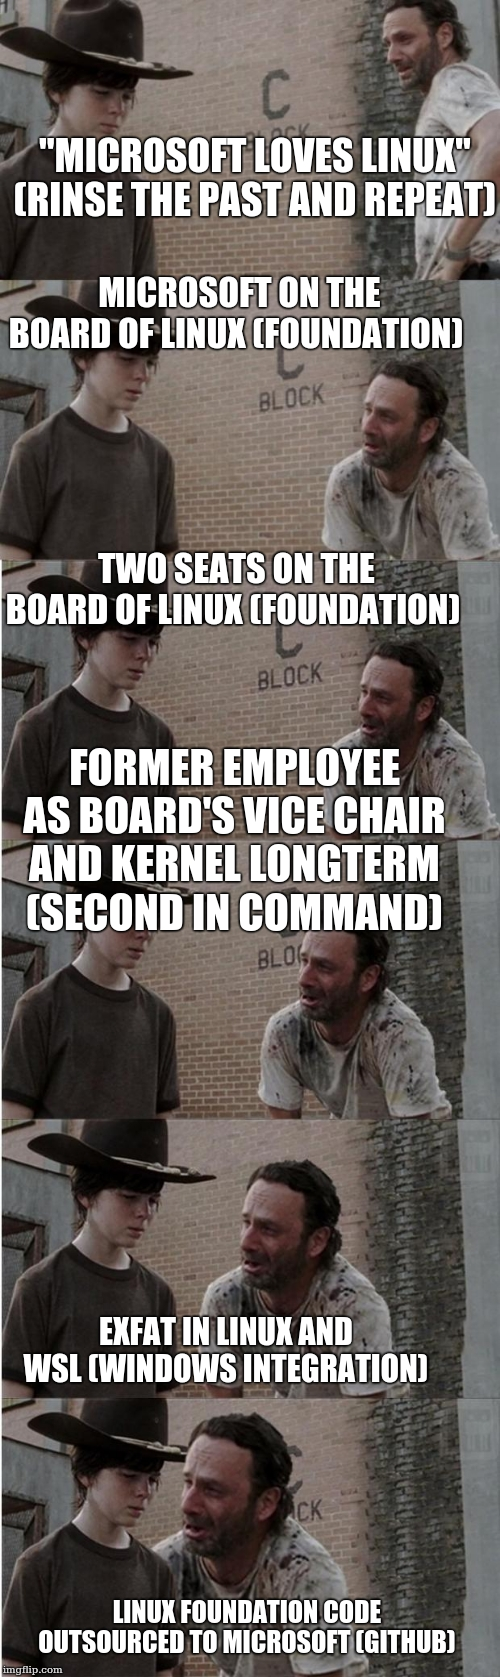 'Microsoft loves Linux' (rinse the past and repeat); Microsoft on the Board of Linux (Foundation); Two seats on the Board of Linux (Foundation); Former employee as Board's Vice Chair and kernel longterm (second in command); exFat in Linux and WSL (Windows integration); Linux Foundation code outsourced to Microsoft (GitHub)